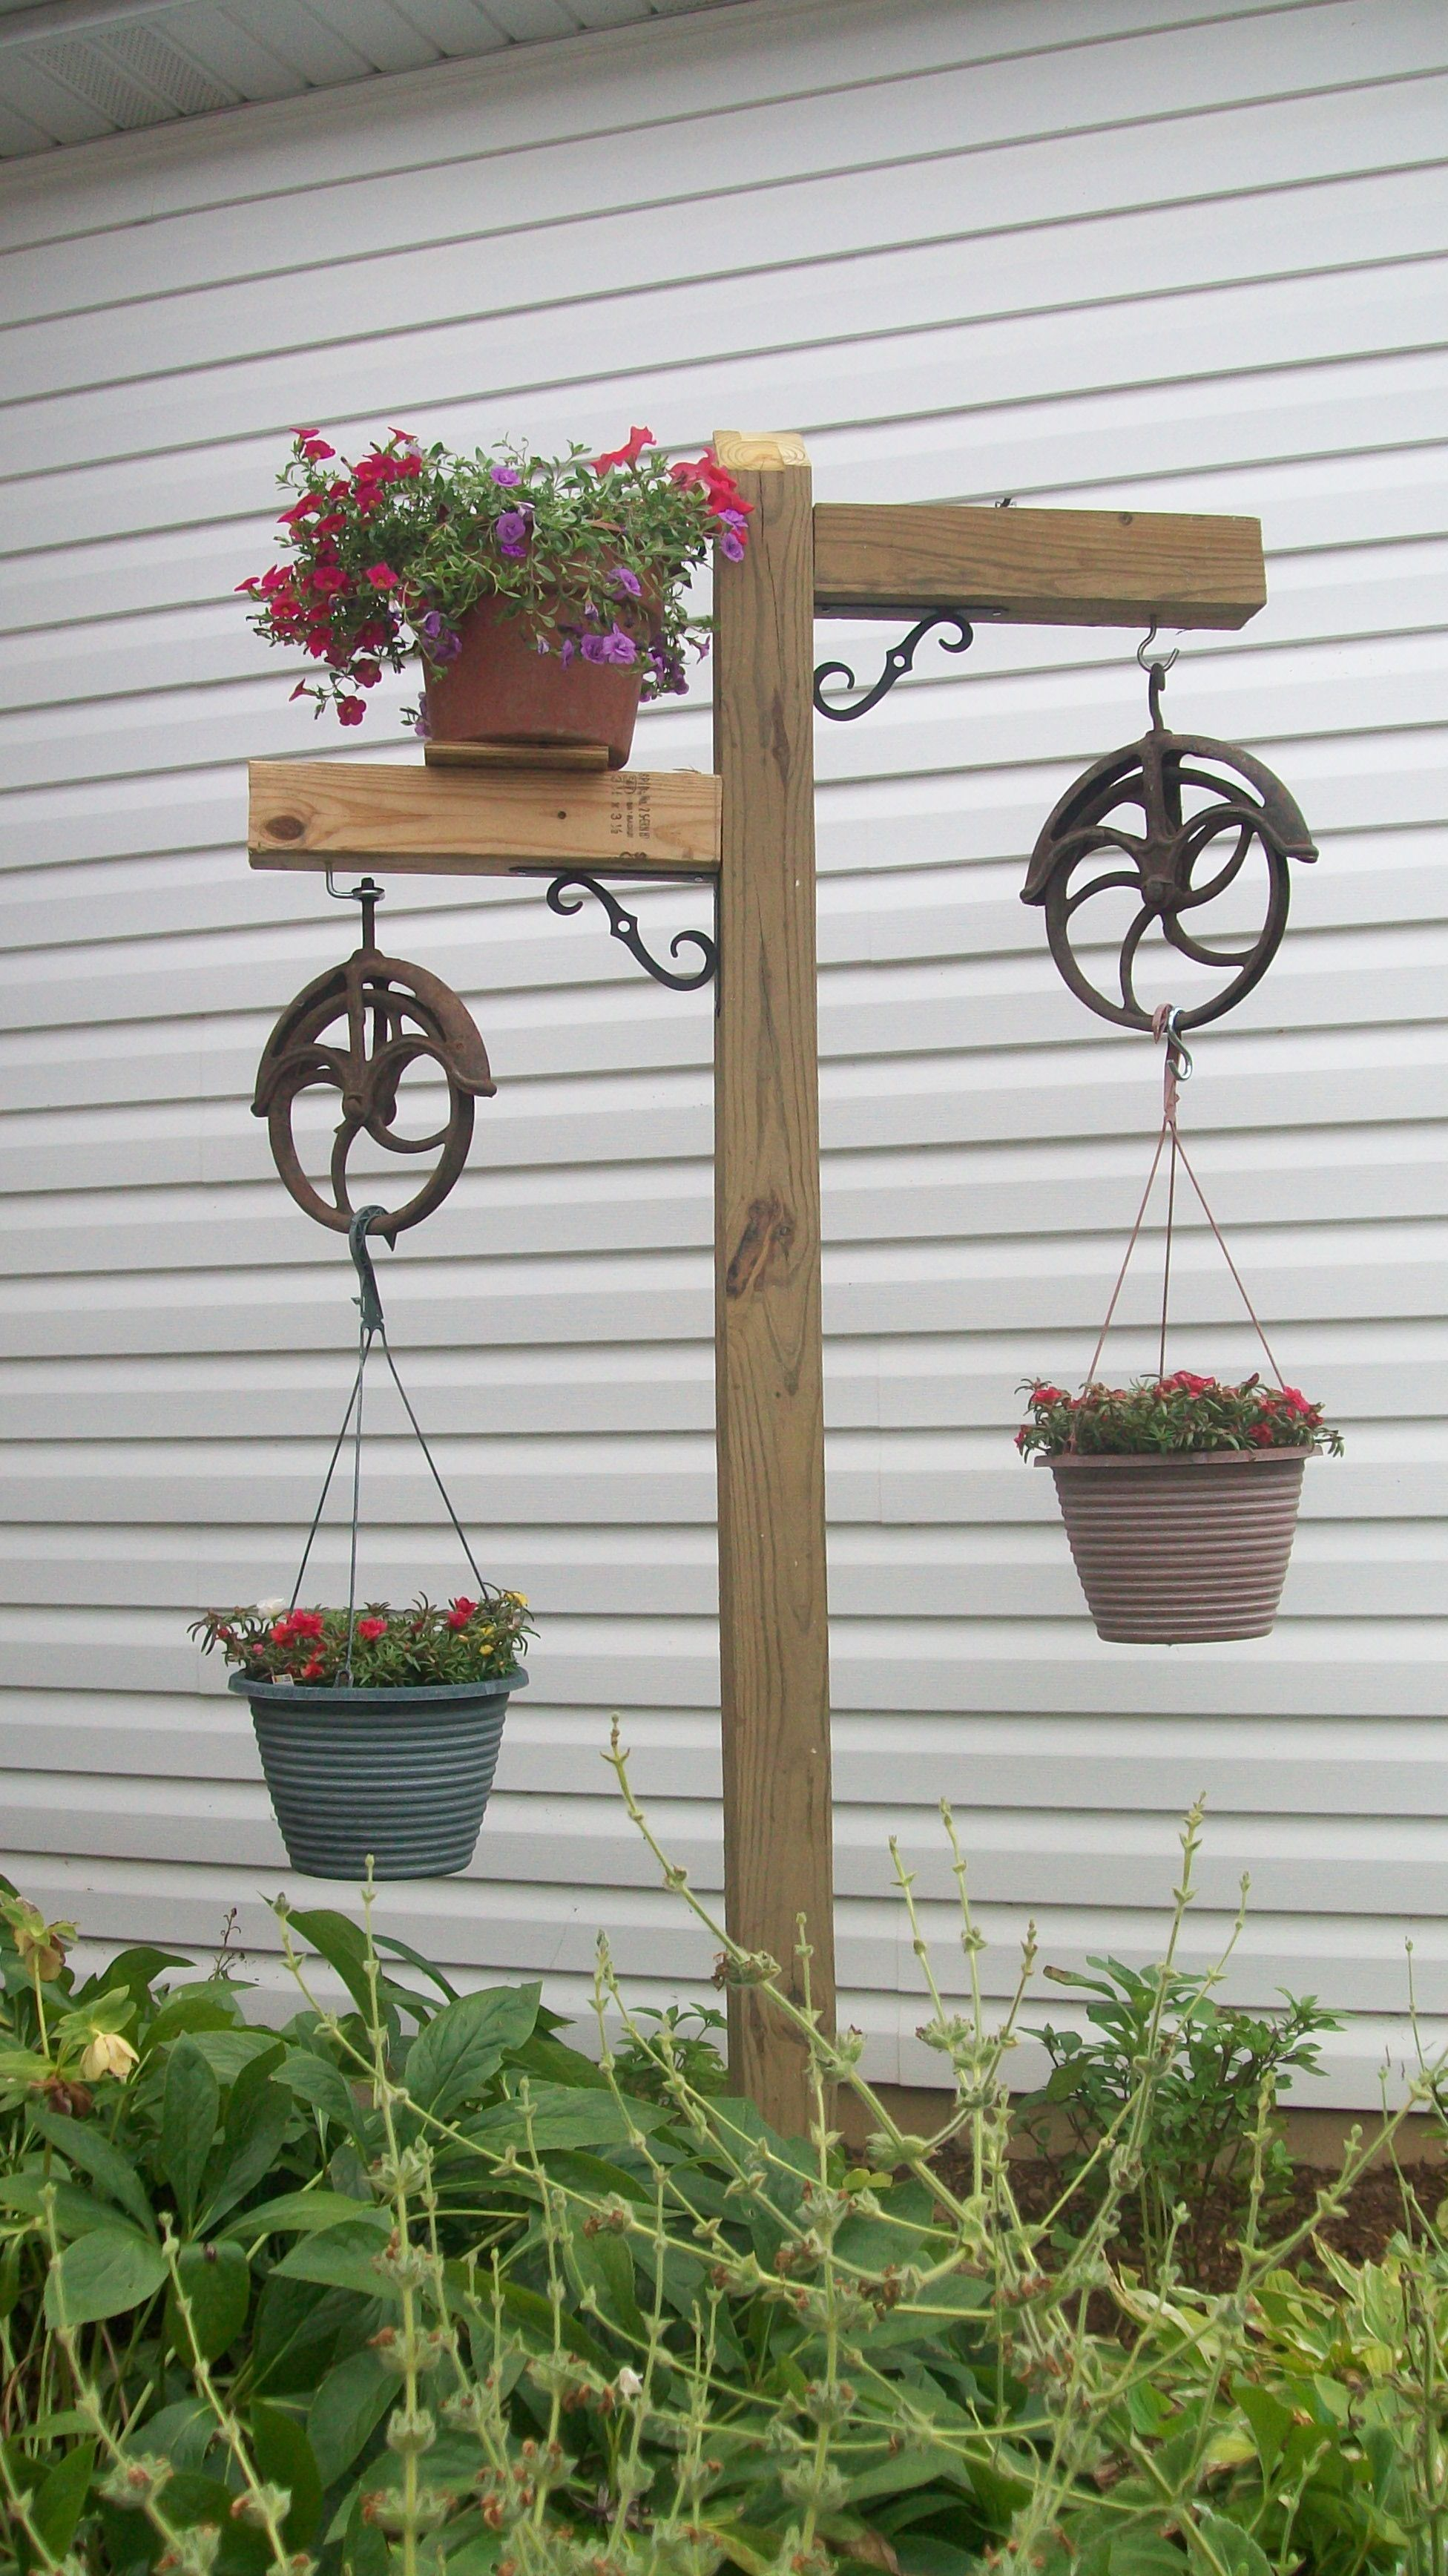 Garden decor out of junk  Plant hanger with country charm made by Tim  Yard and Garden